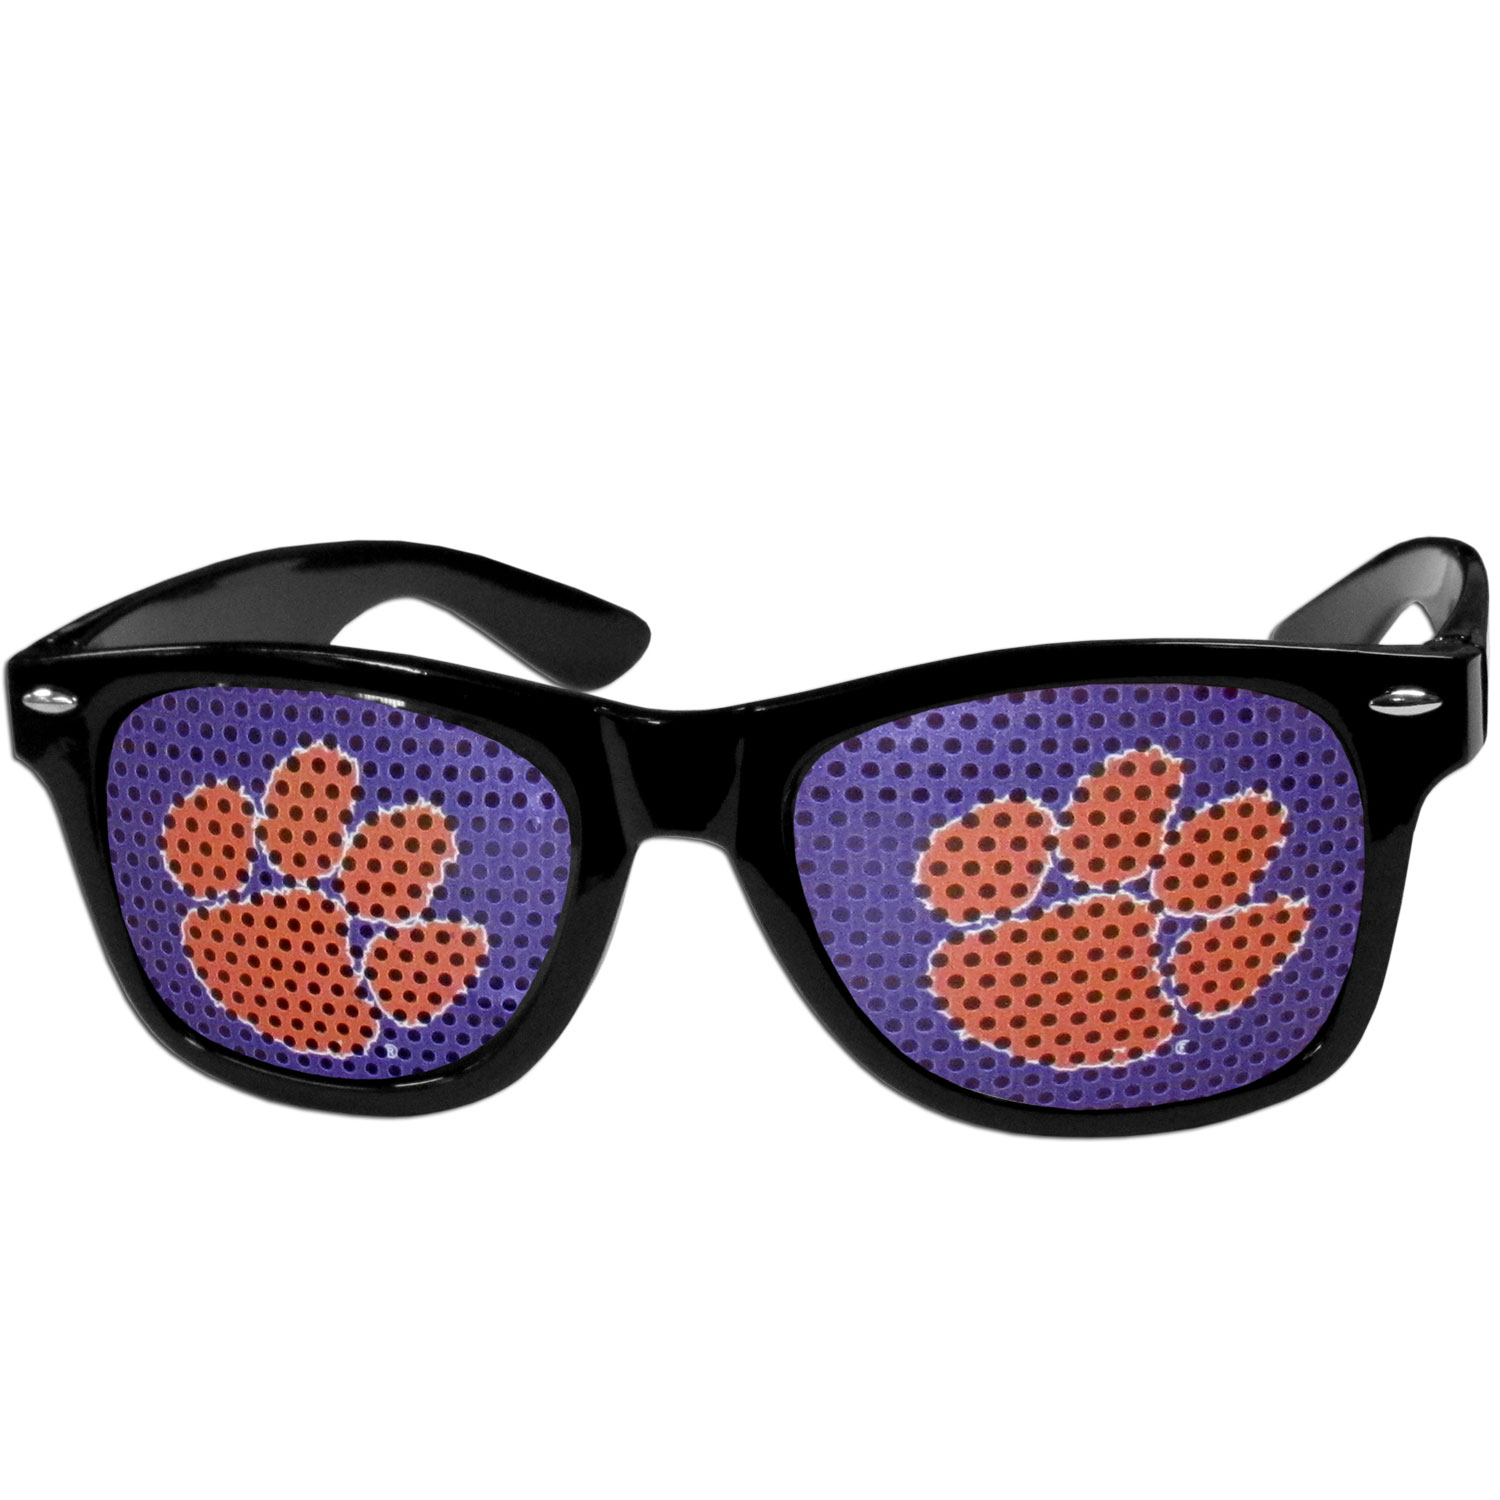 Clemson Tigers Game Day Shades - Our officially licensed game day shades are the perfect accessory for the devoted Clemson Tigers fan! The sunglasses have durable polycarbonate frames with flex hinges for comfort and damage resistance. The lenses feature brightly colored team clings that are perforated for visibility.